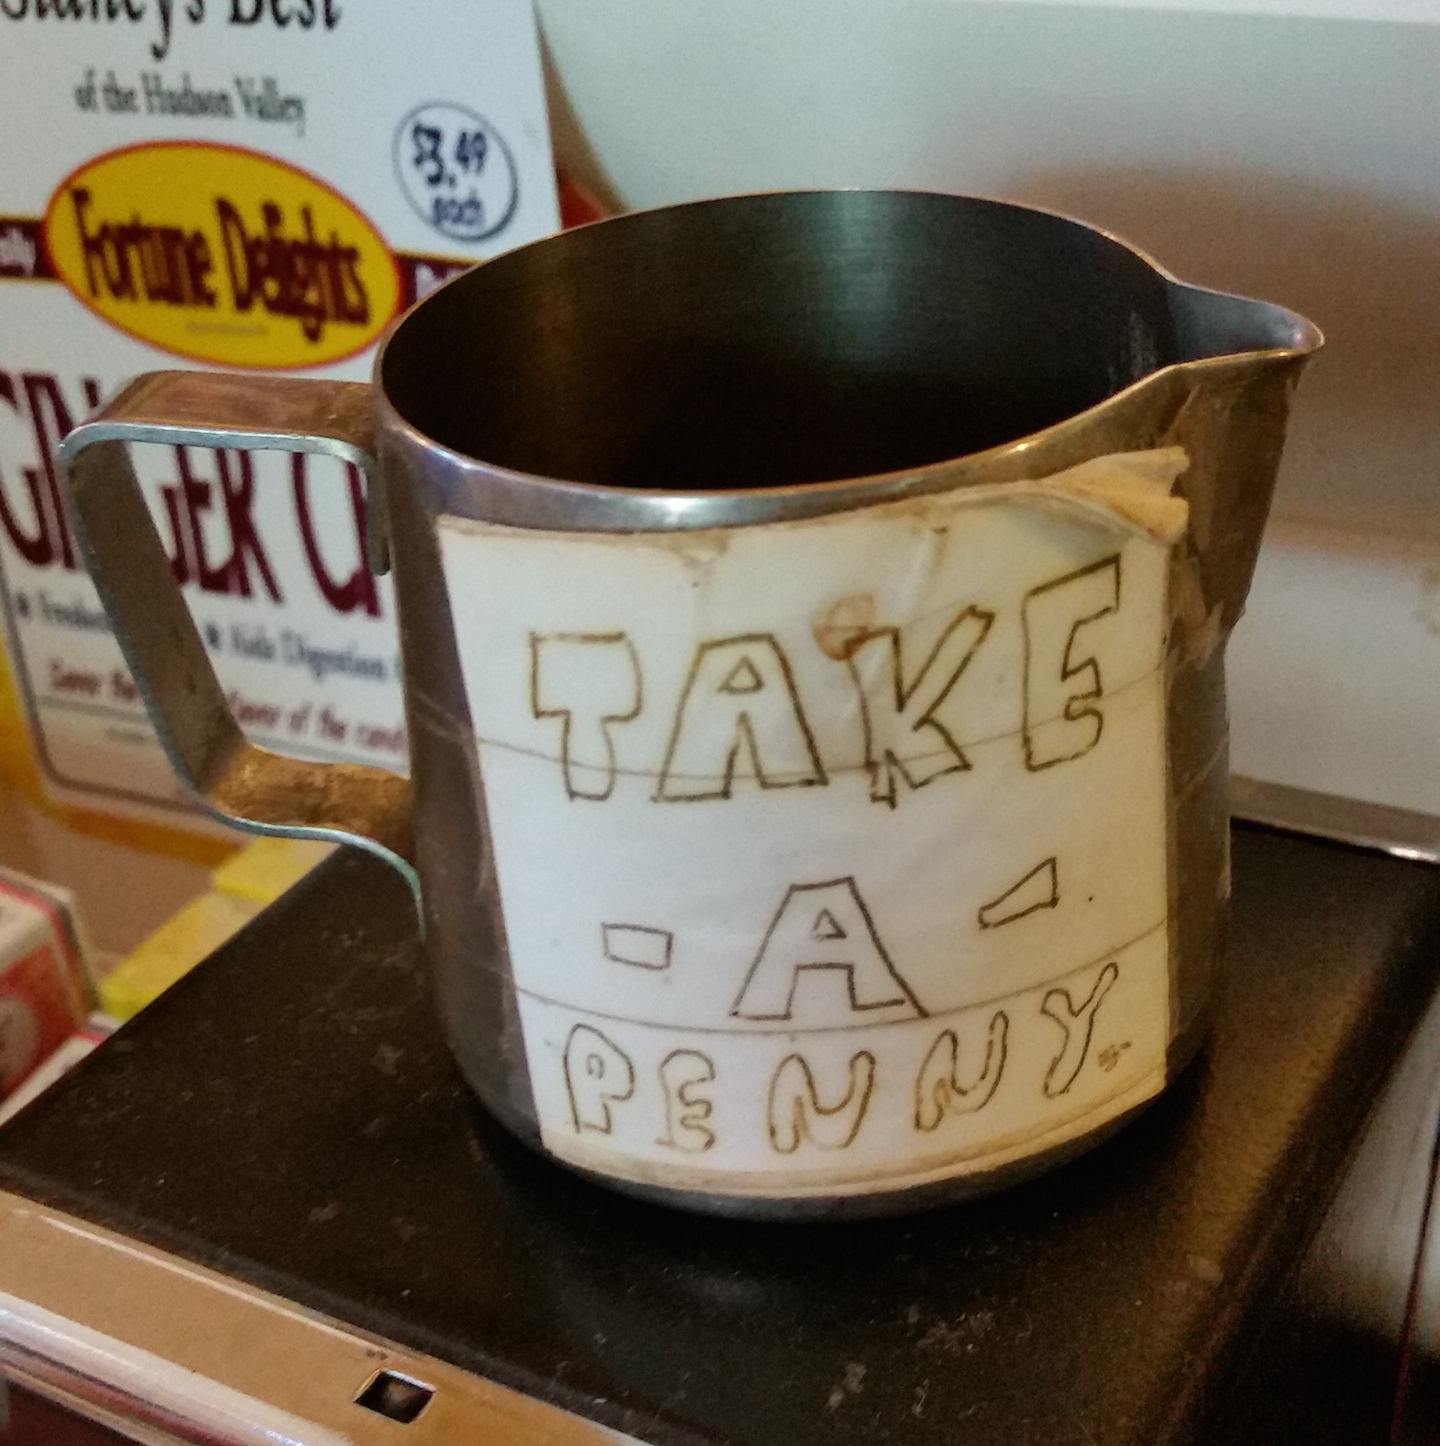 Found at The Bakery, love the handlettering and creative use of the creamer.